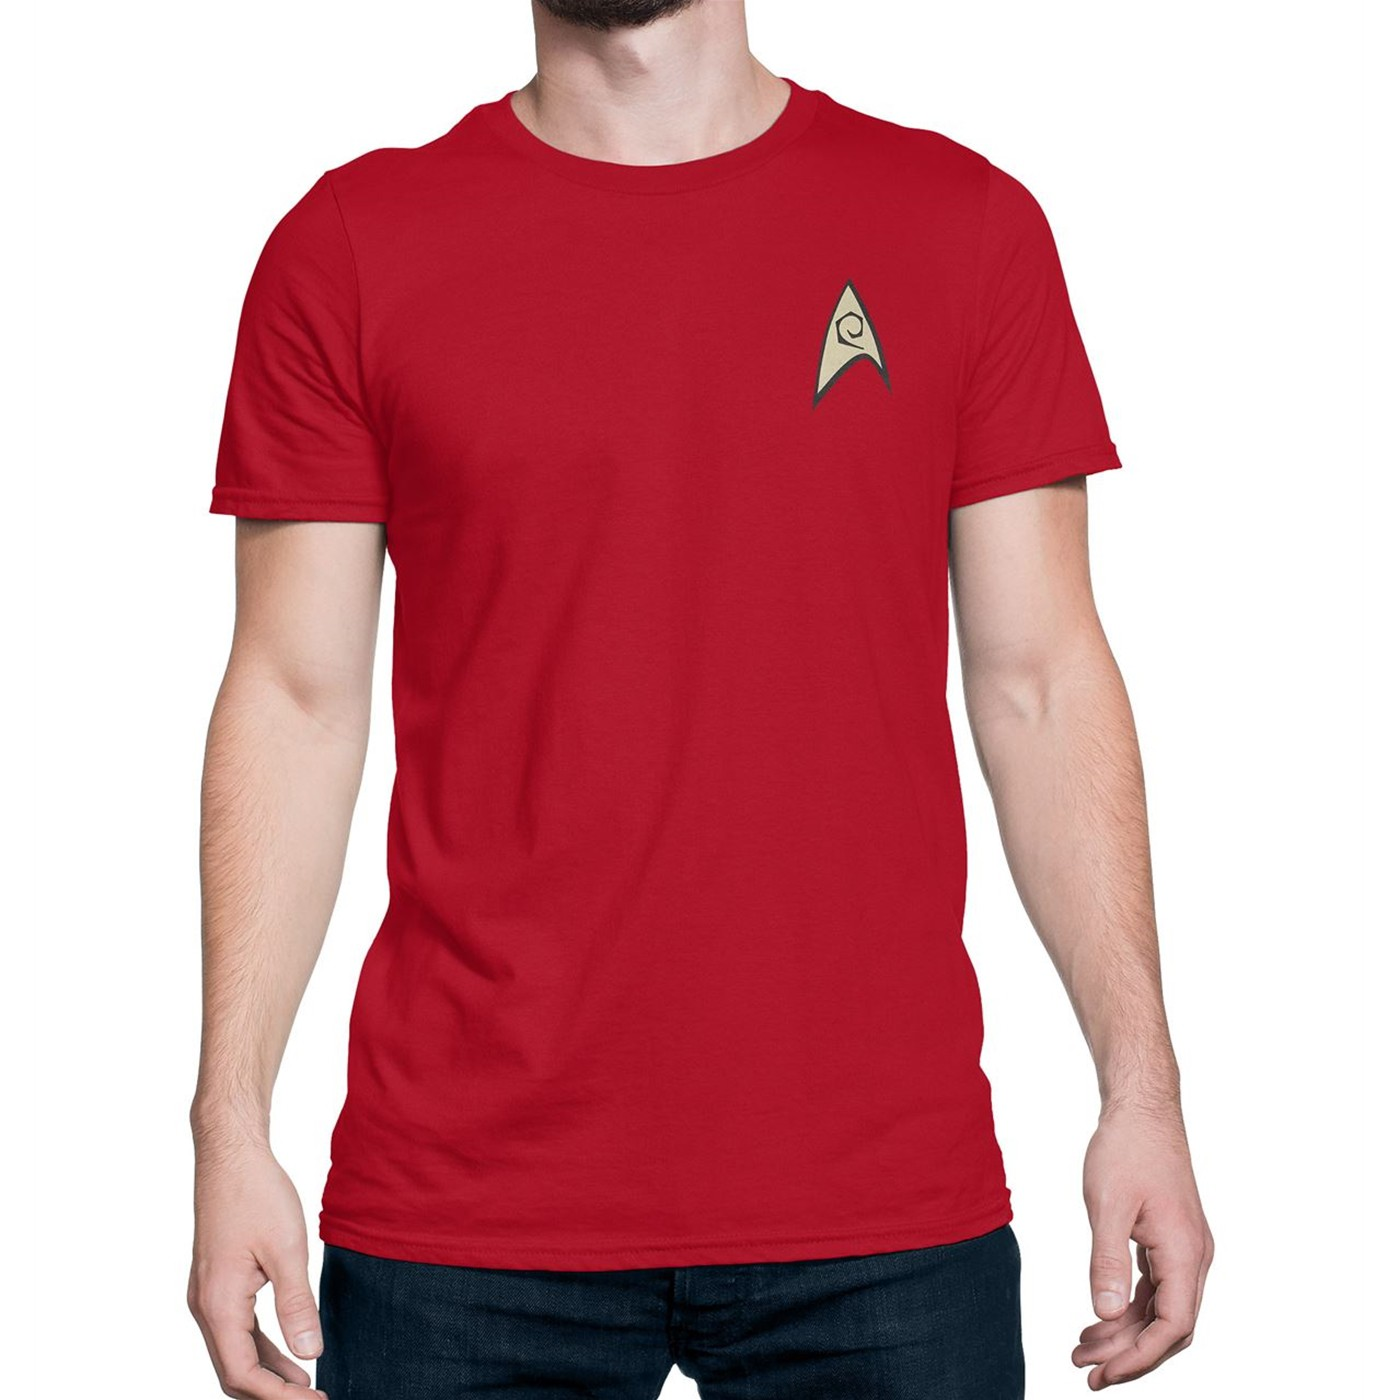 Best Star Trek Engineering Security Uniform T-Shirt